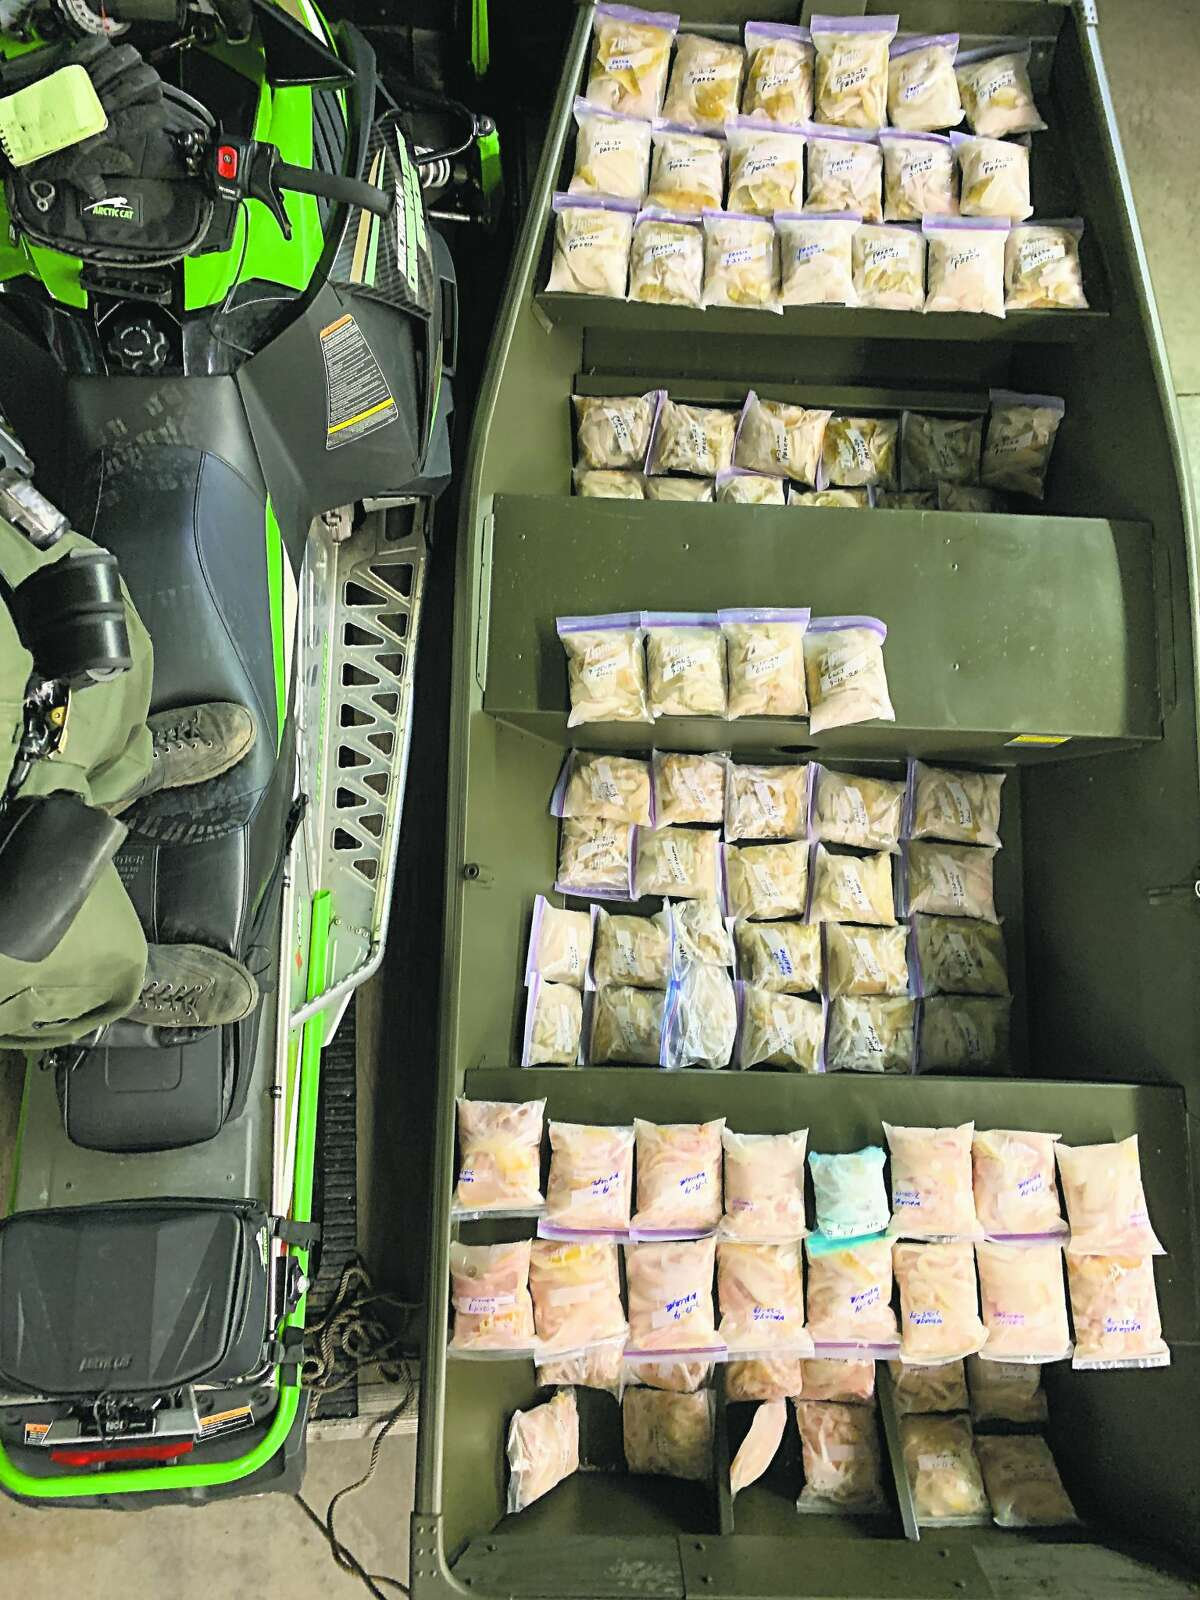 A DNR officer and a Huron County sheriff's deputy reportedly uncovered this unlawful amount of stored fish at the residence of a Caseville man, who is one of two facing charges of overfishing.